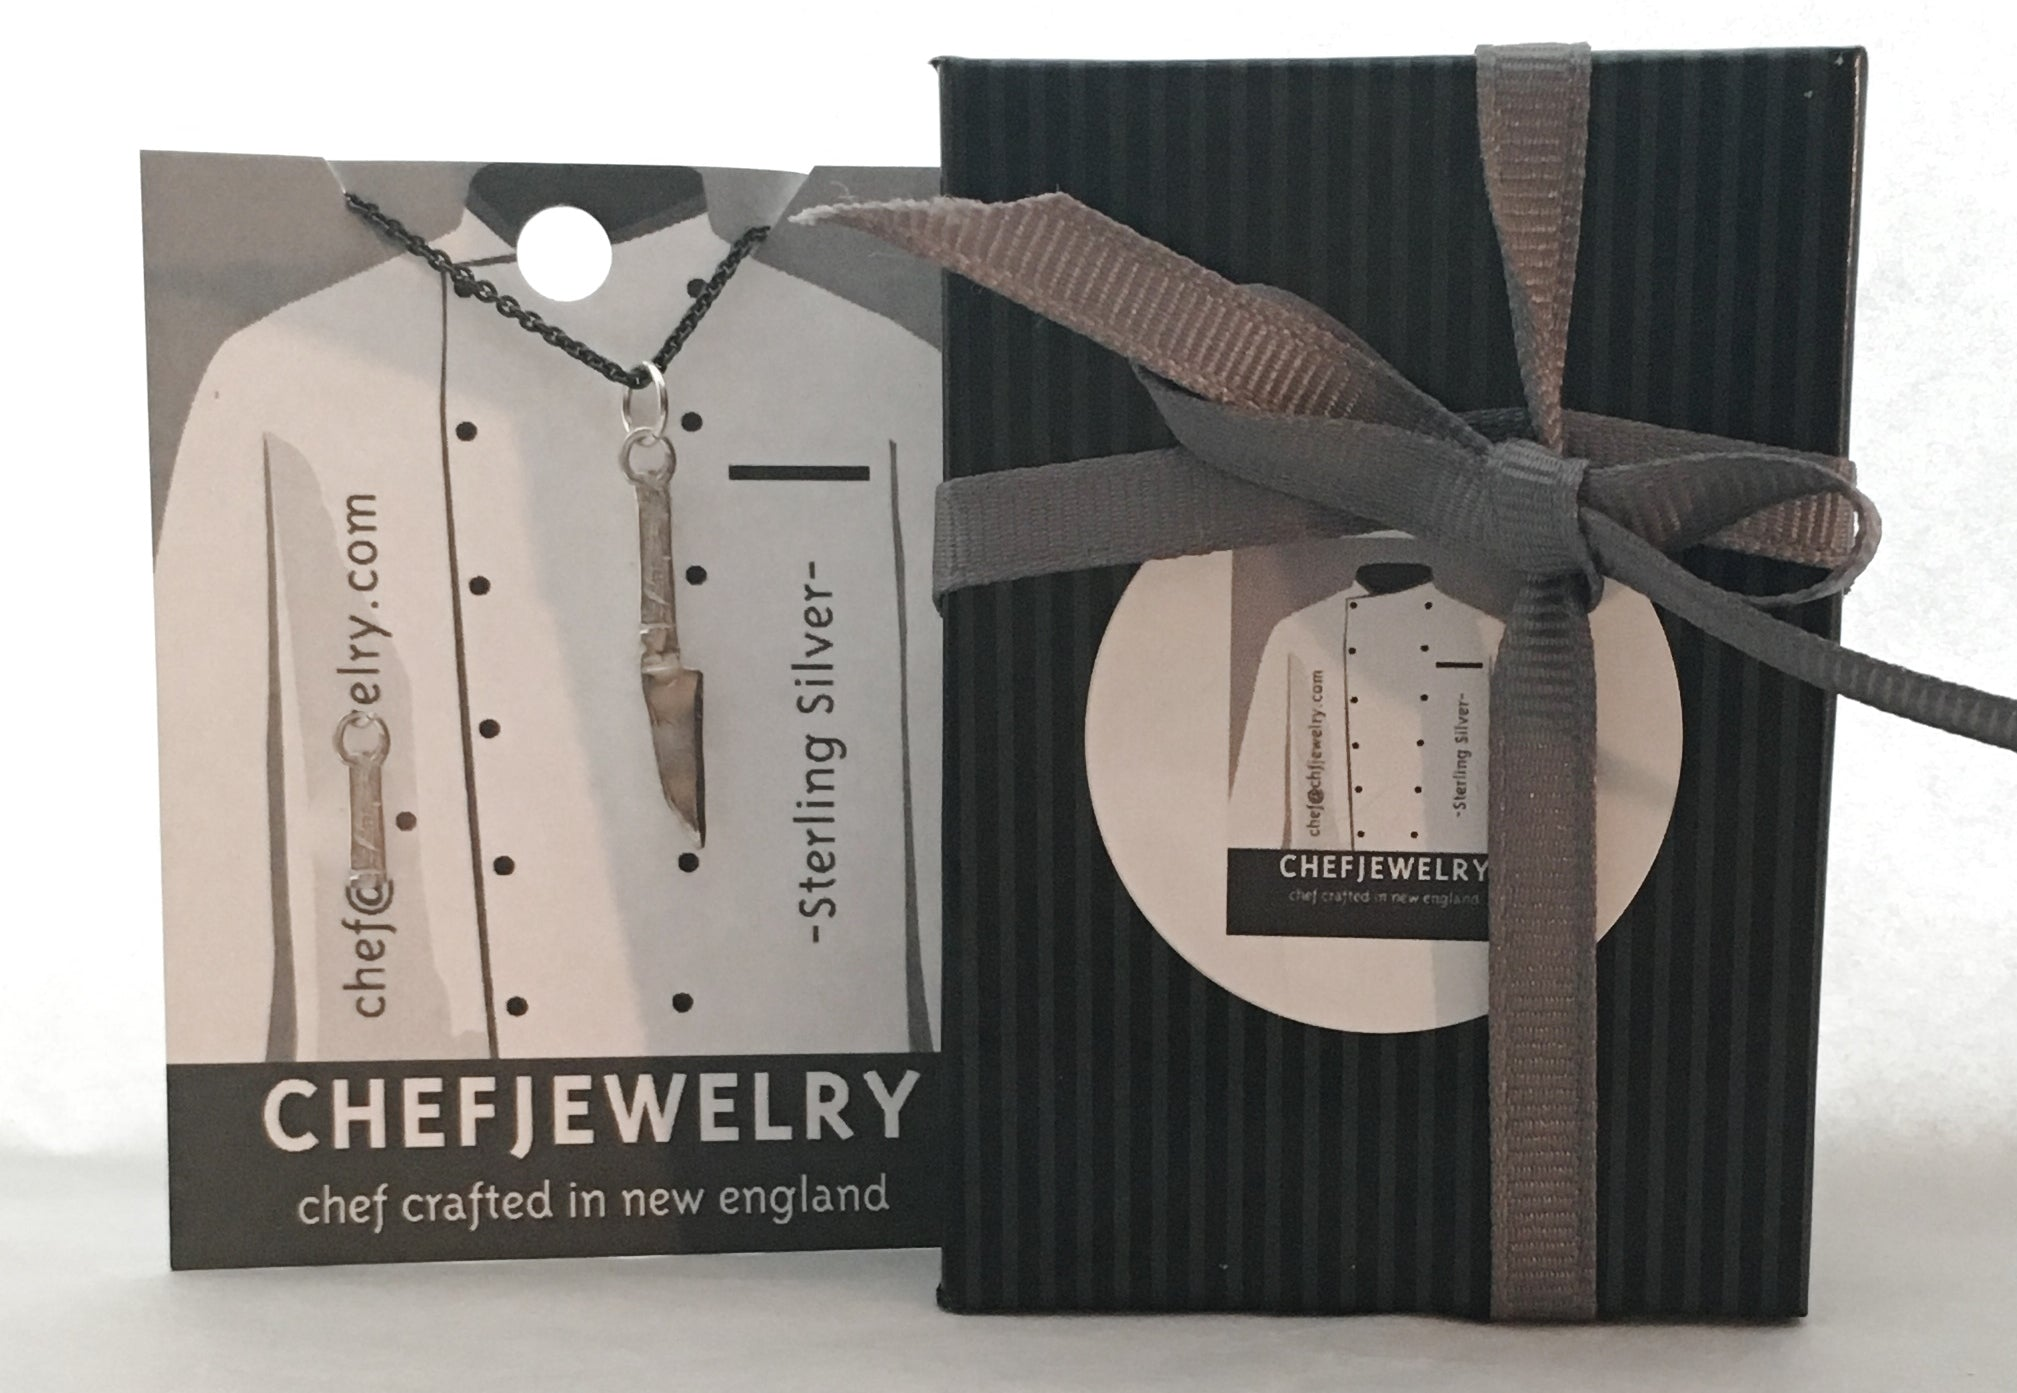 Your necklace will arrive in this custom ChefJewelry packaging